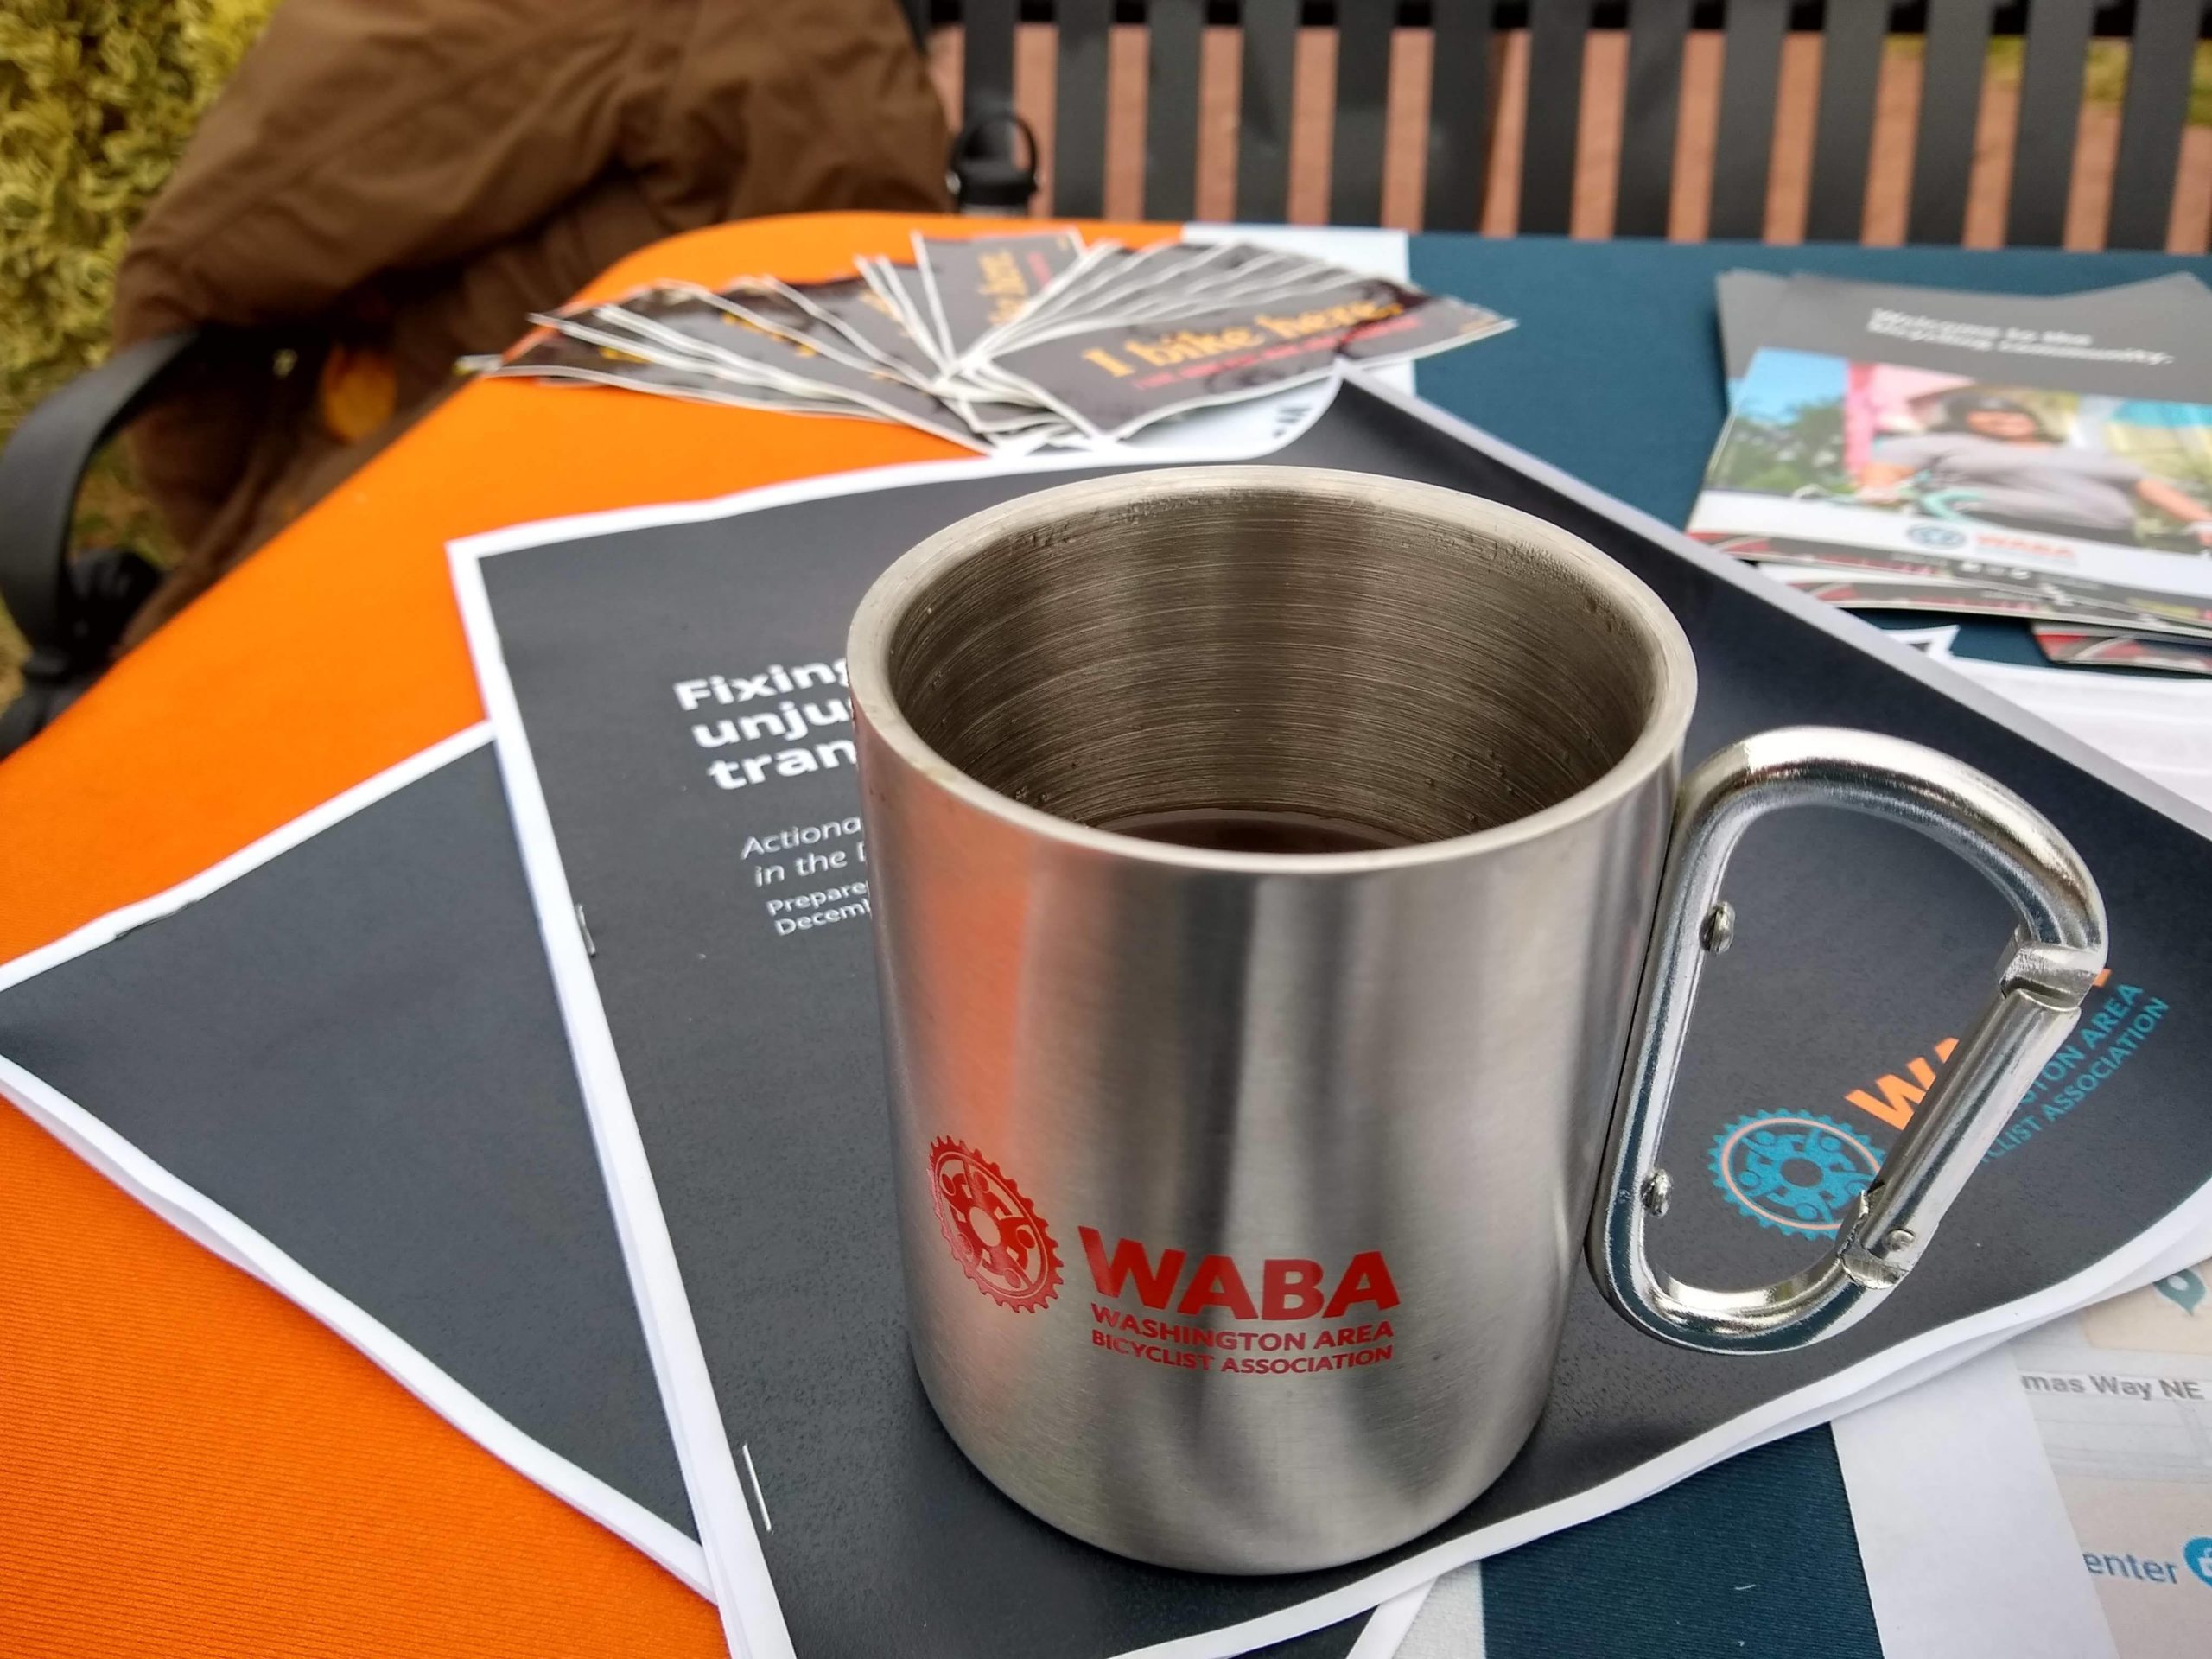 A new metal WABA mug sits on printed docuements that are branded WABA materials on a table outside